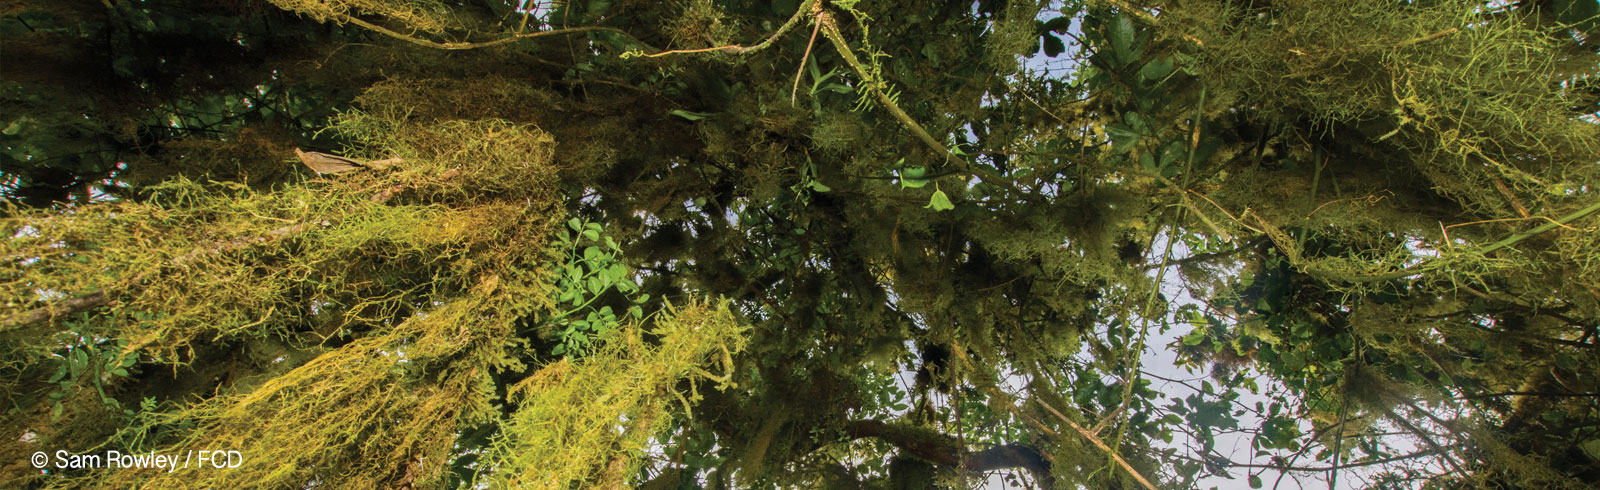 Scalesia Forest